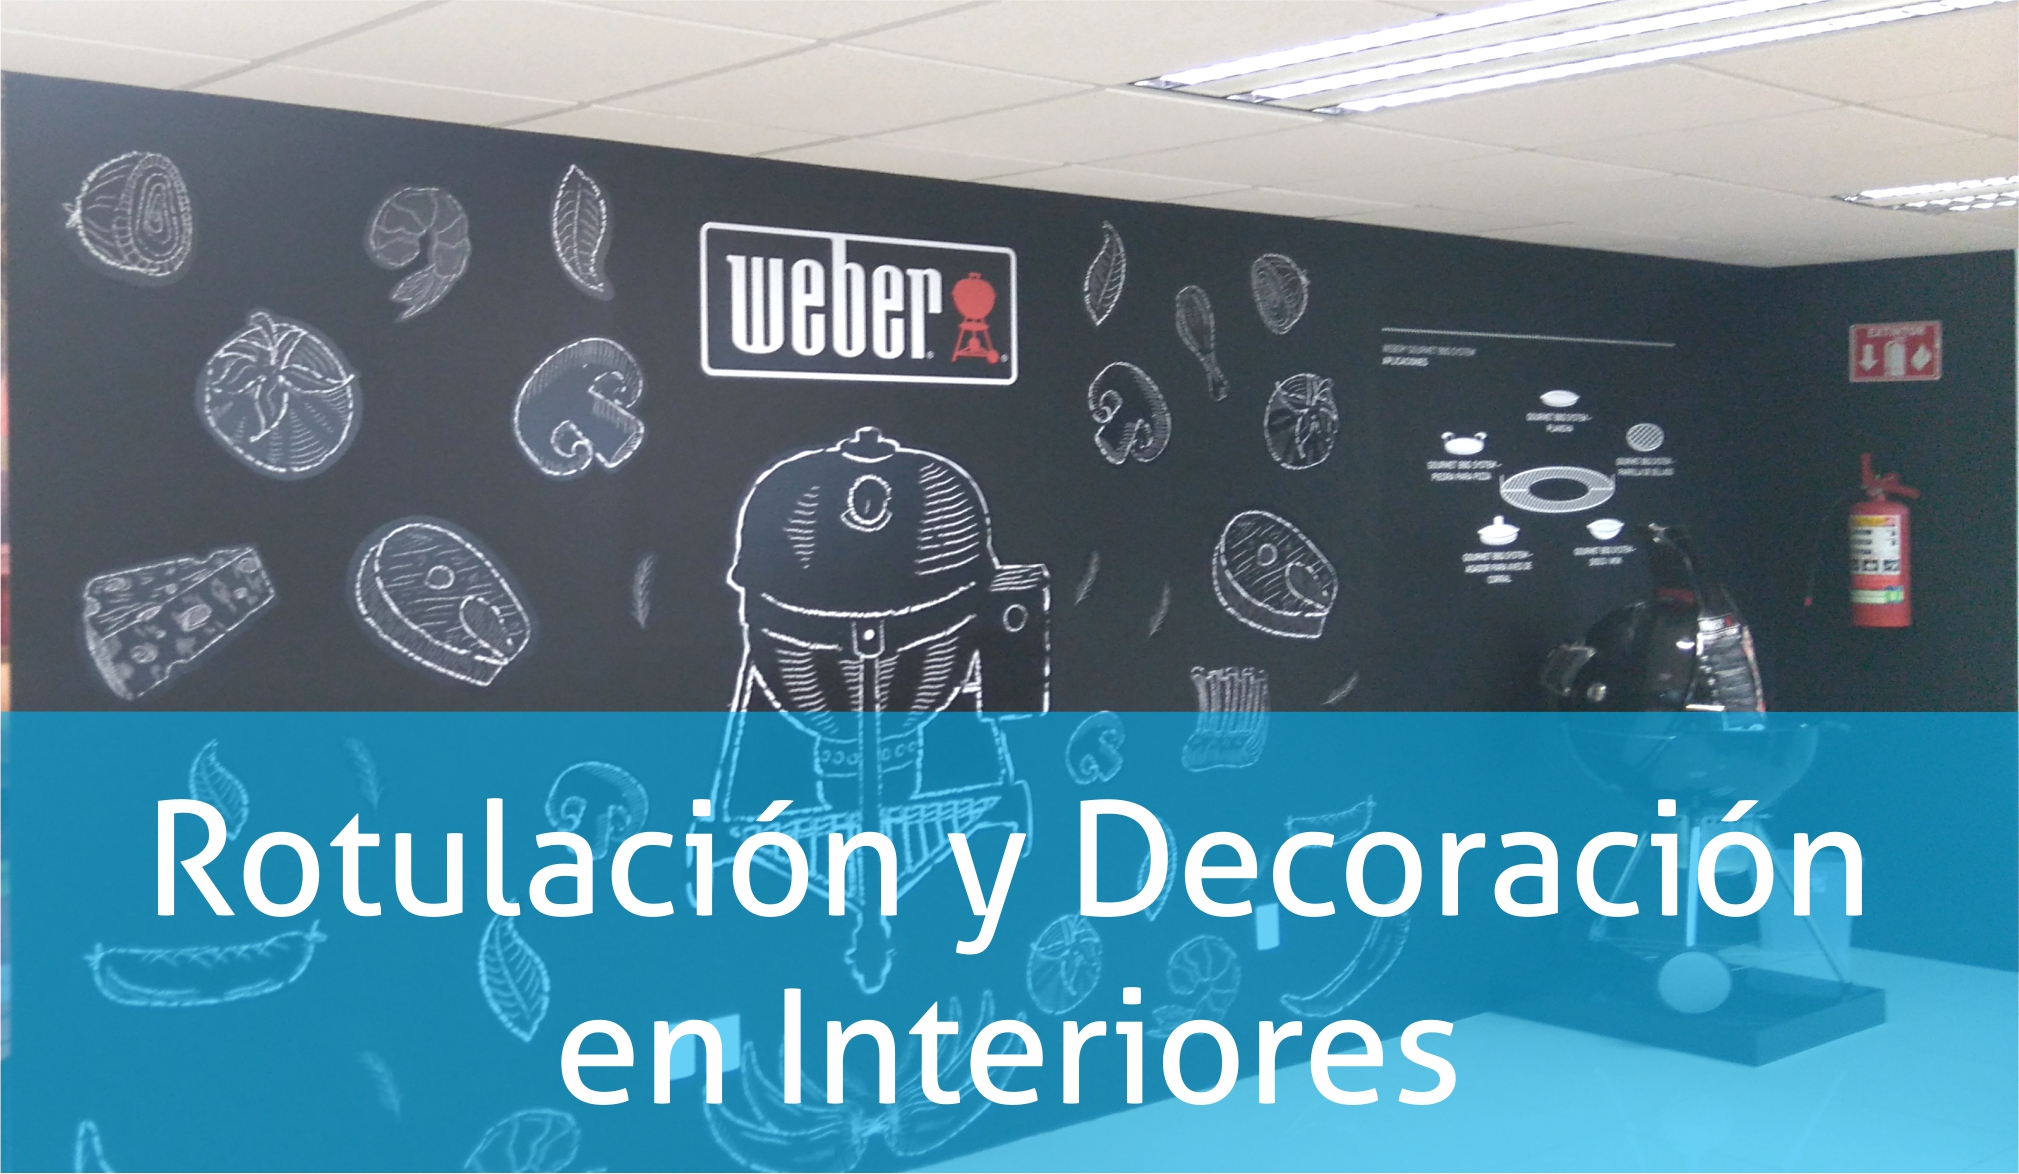 Rotulación y Decoración en Interiores